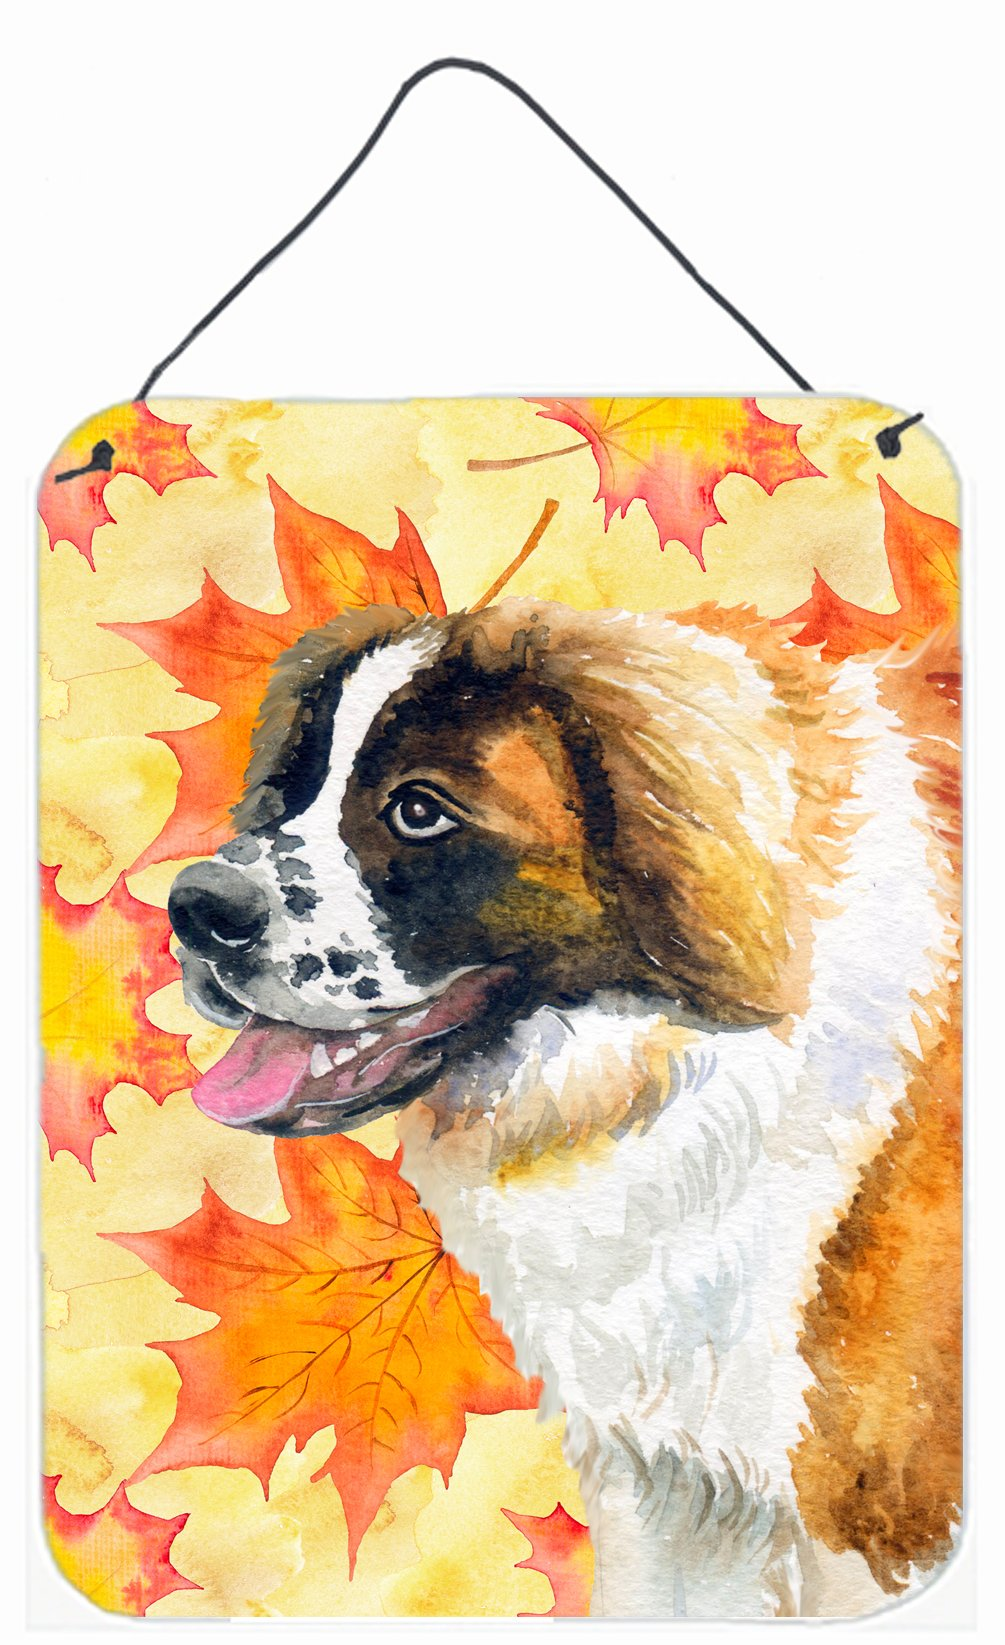 Saint Bernard Fall Wall or Door Hanging Prints BB9940DS1216 by Caroline's Treasures